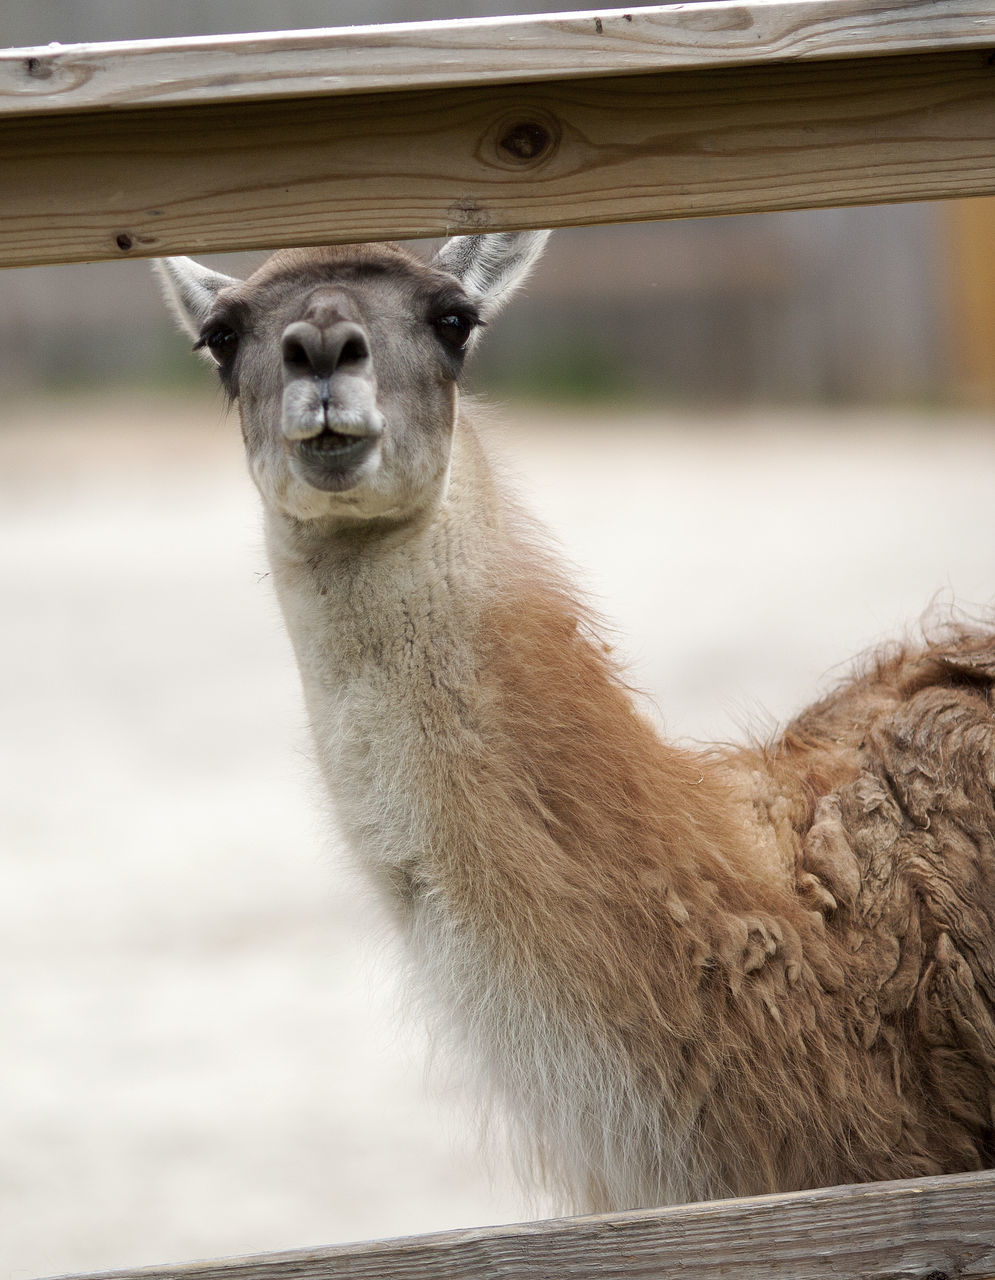 mammal, animal themes, one animal, day, livestock, focus on foreground, outdoors, domestic animals, no people, animals in the wild, field, nature, animal wildlife, llama, portrait, close-up